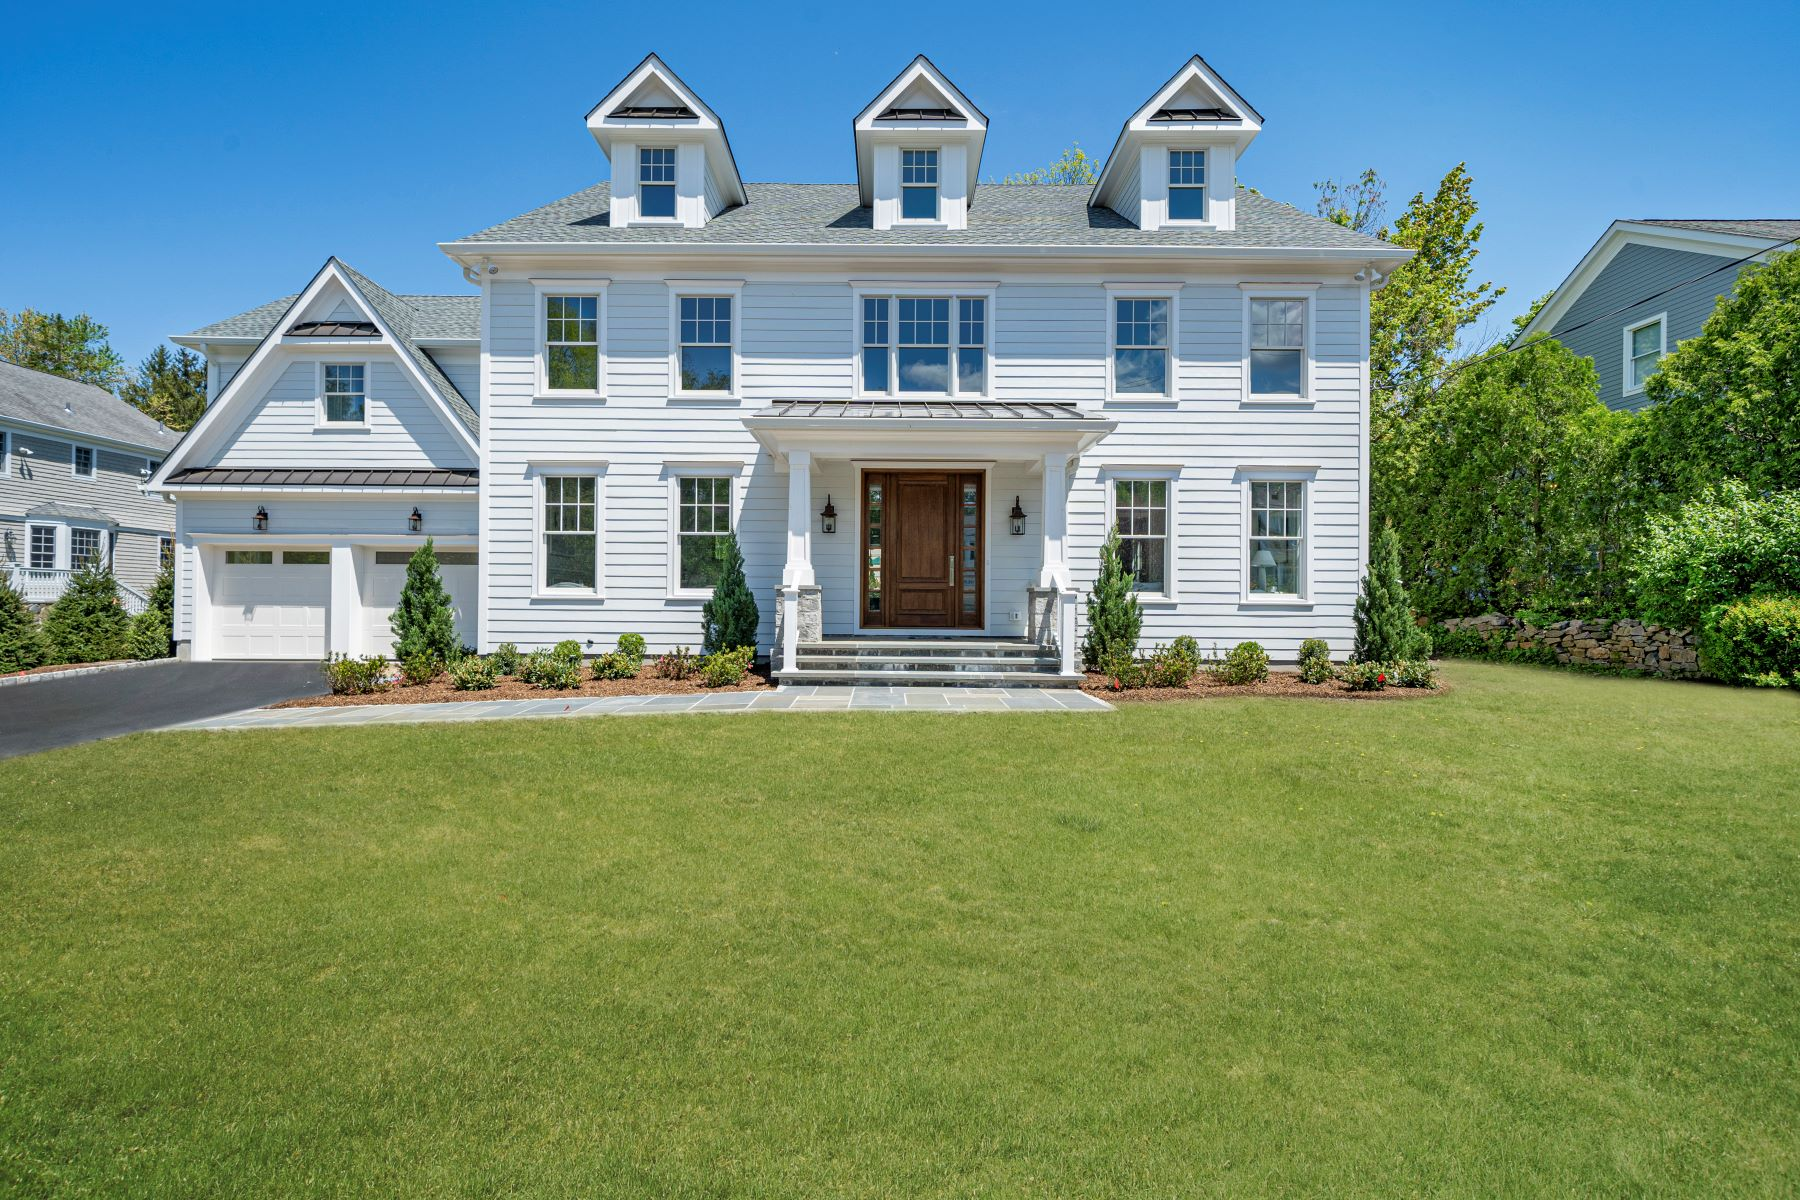 Single Family Homes for Active at Exceptional New Construction 11 Windmill Lane Scarsdale, New York 10583 United States